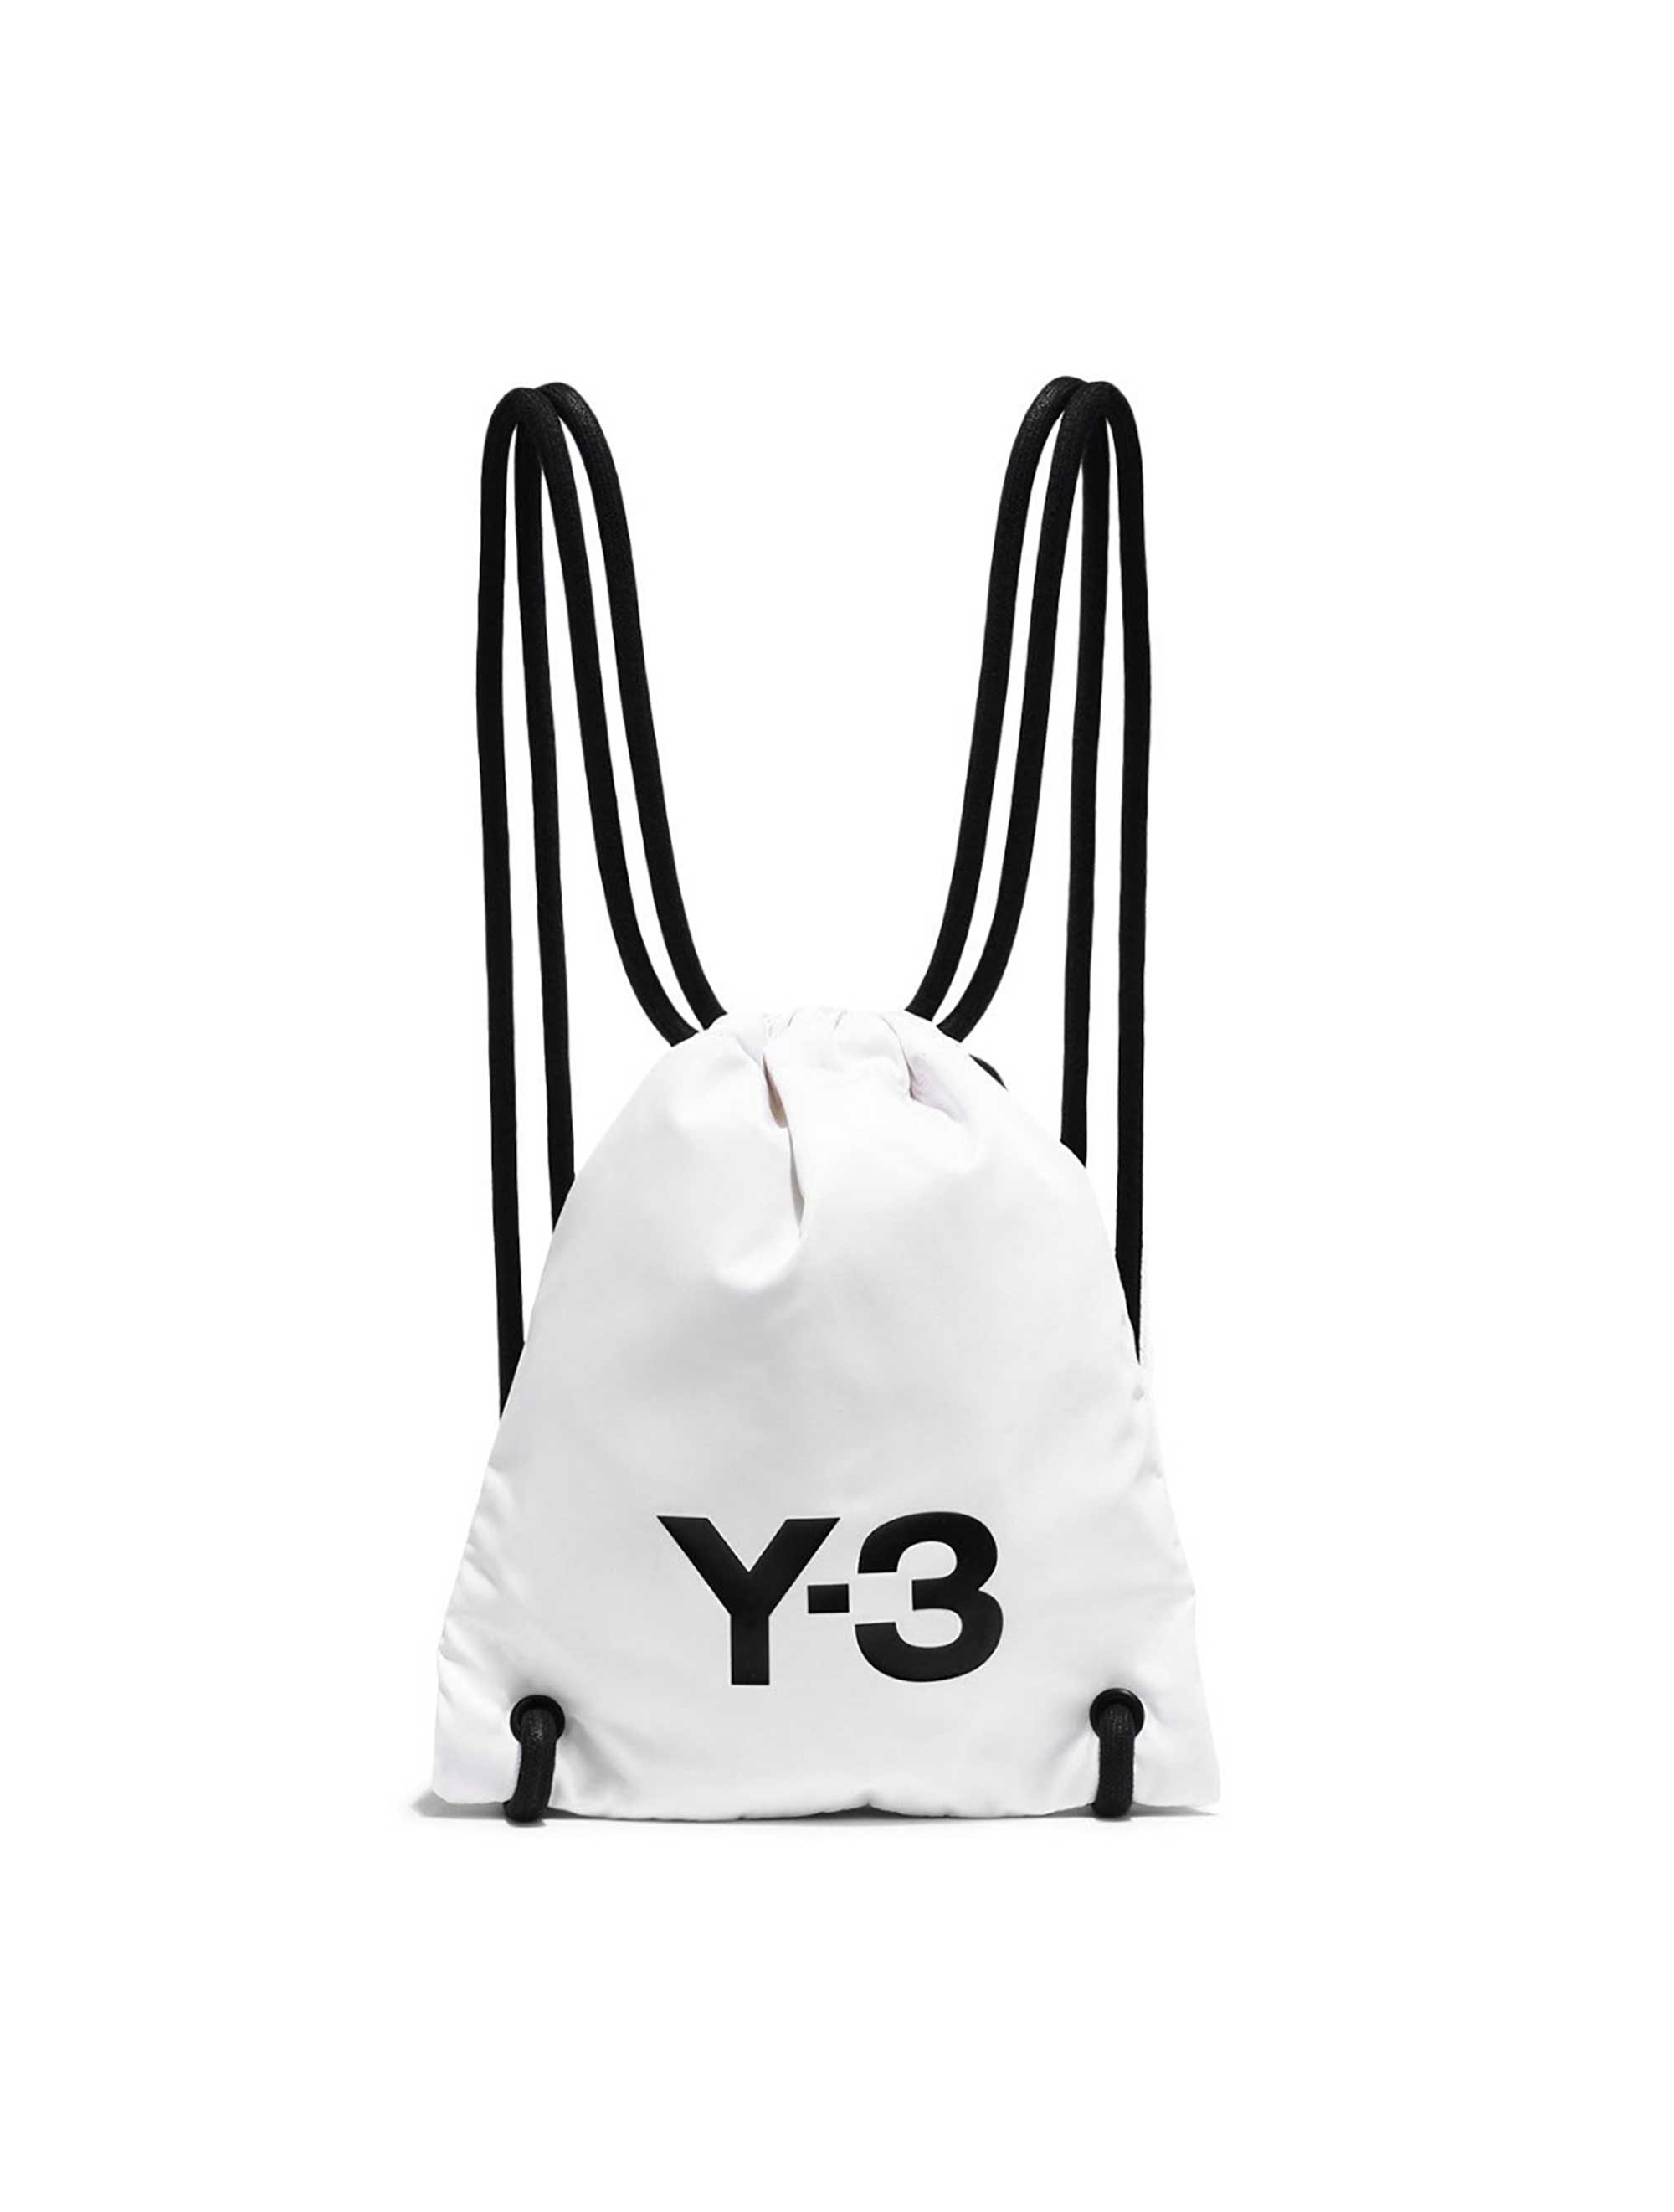 Mimma Ninni – Luxury and Fashion Shopping. Adidas Y-3 Mini Gym Bag ...